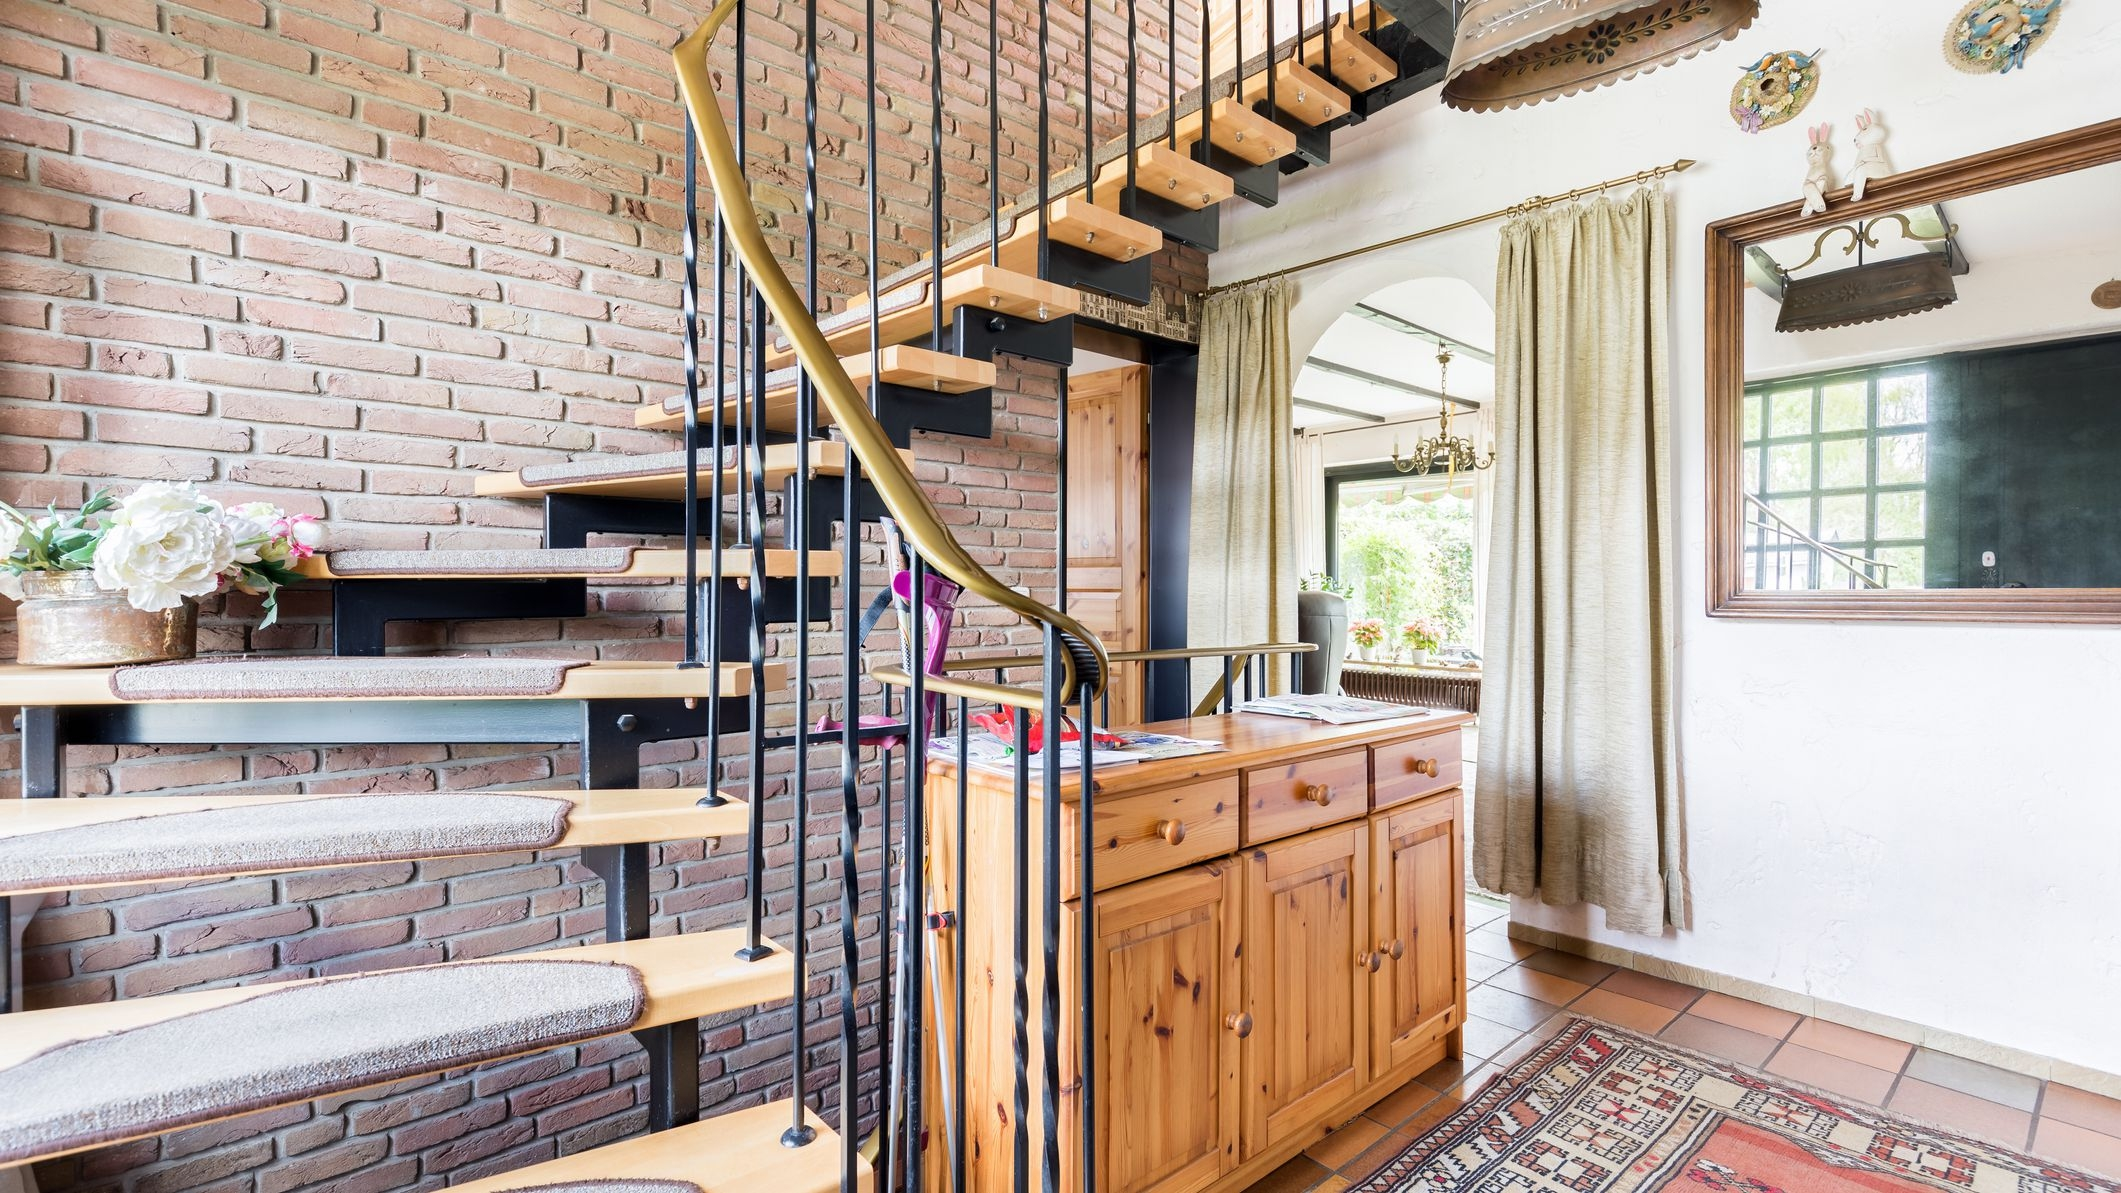 4 Decorative Ways To Dress Up A Stairway | House Inner Steps Design | Residential | Internal Step | Upstairs | Apartment Duplex | Unique